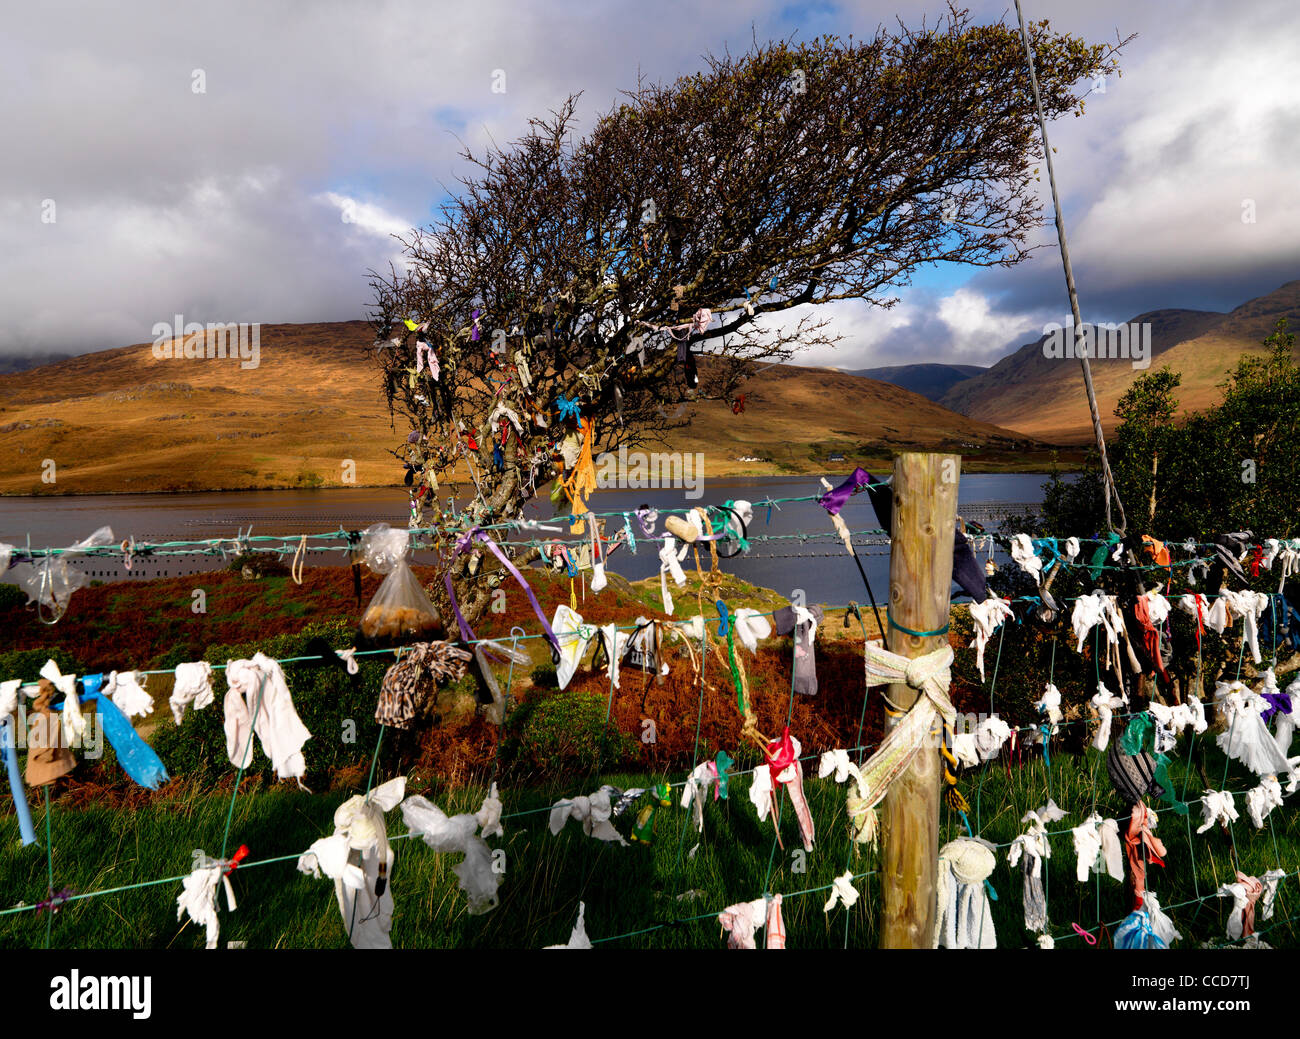 Fairy Thorn Tree, Killery Harbour, Co. Galway Ireland - Stock Image